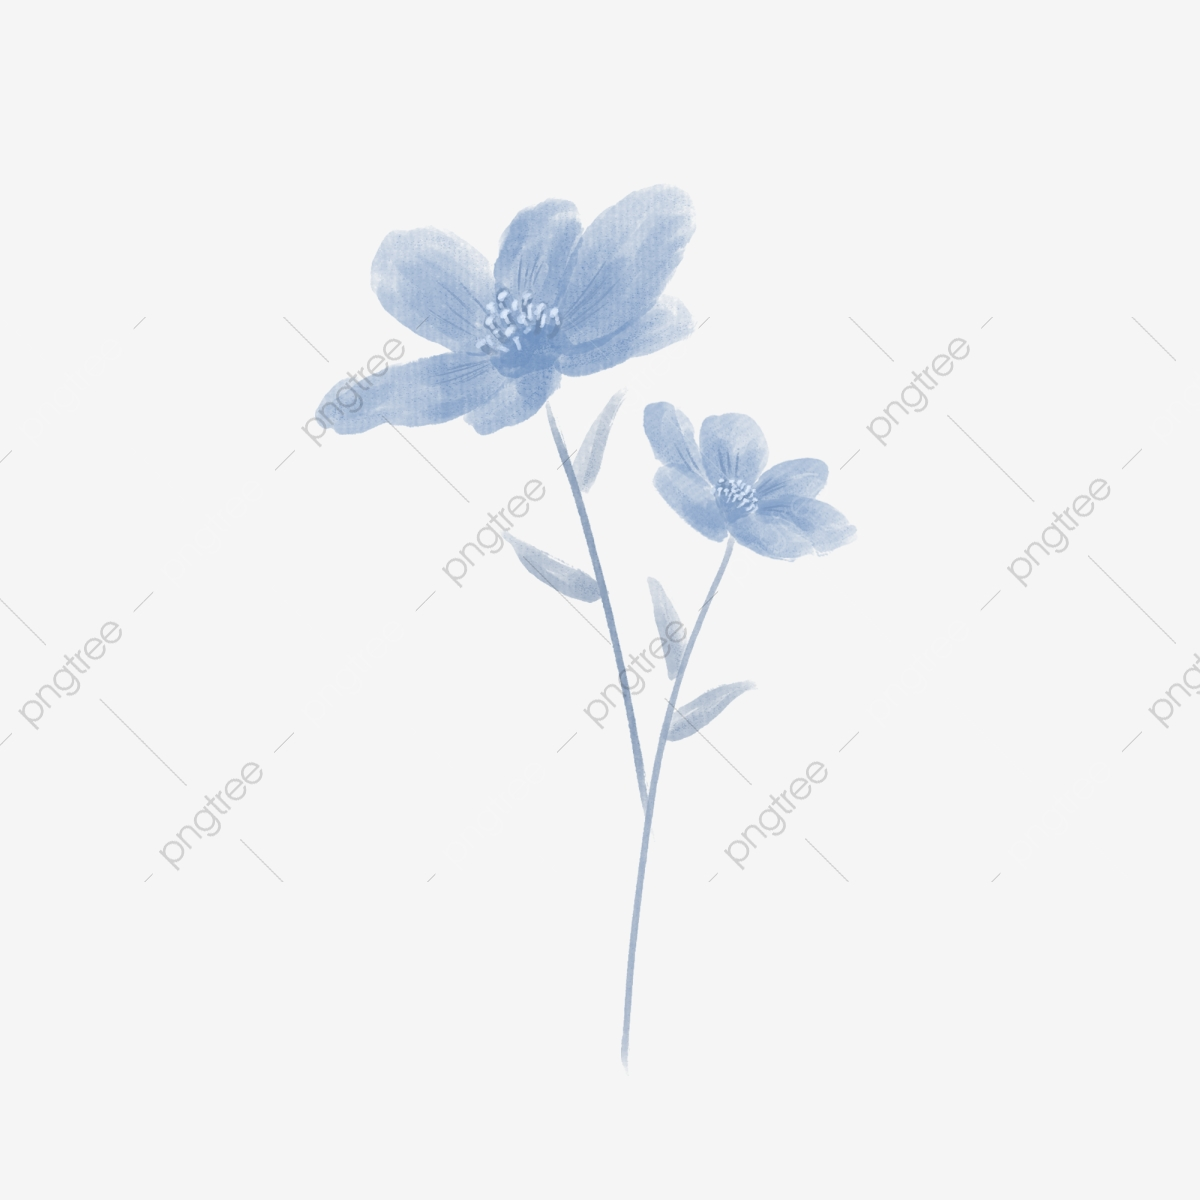 Blue Flowers Png Images Vector And Psd Files Free Download On Pngtree